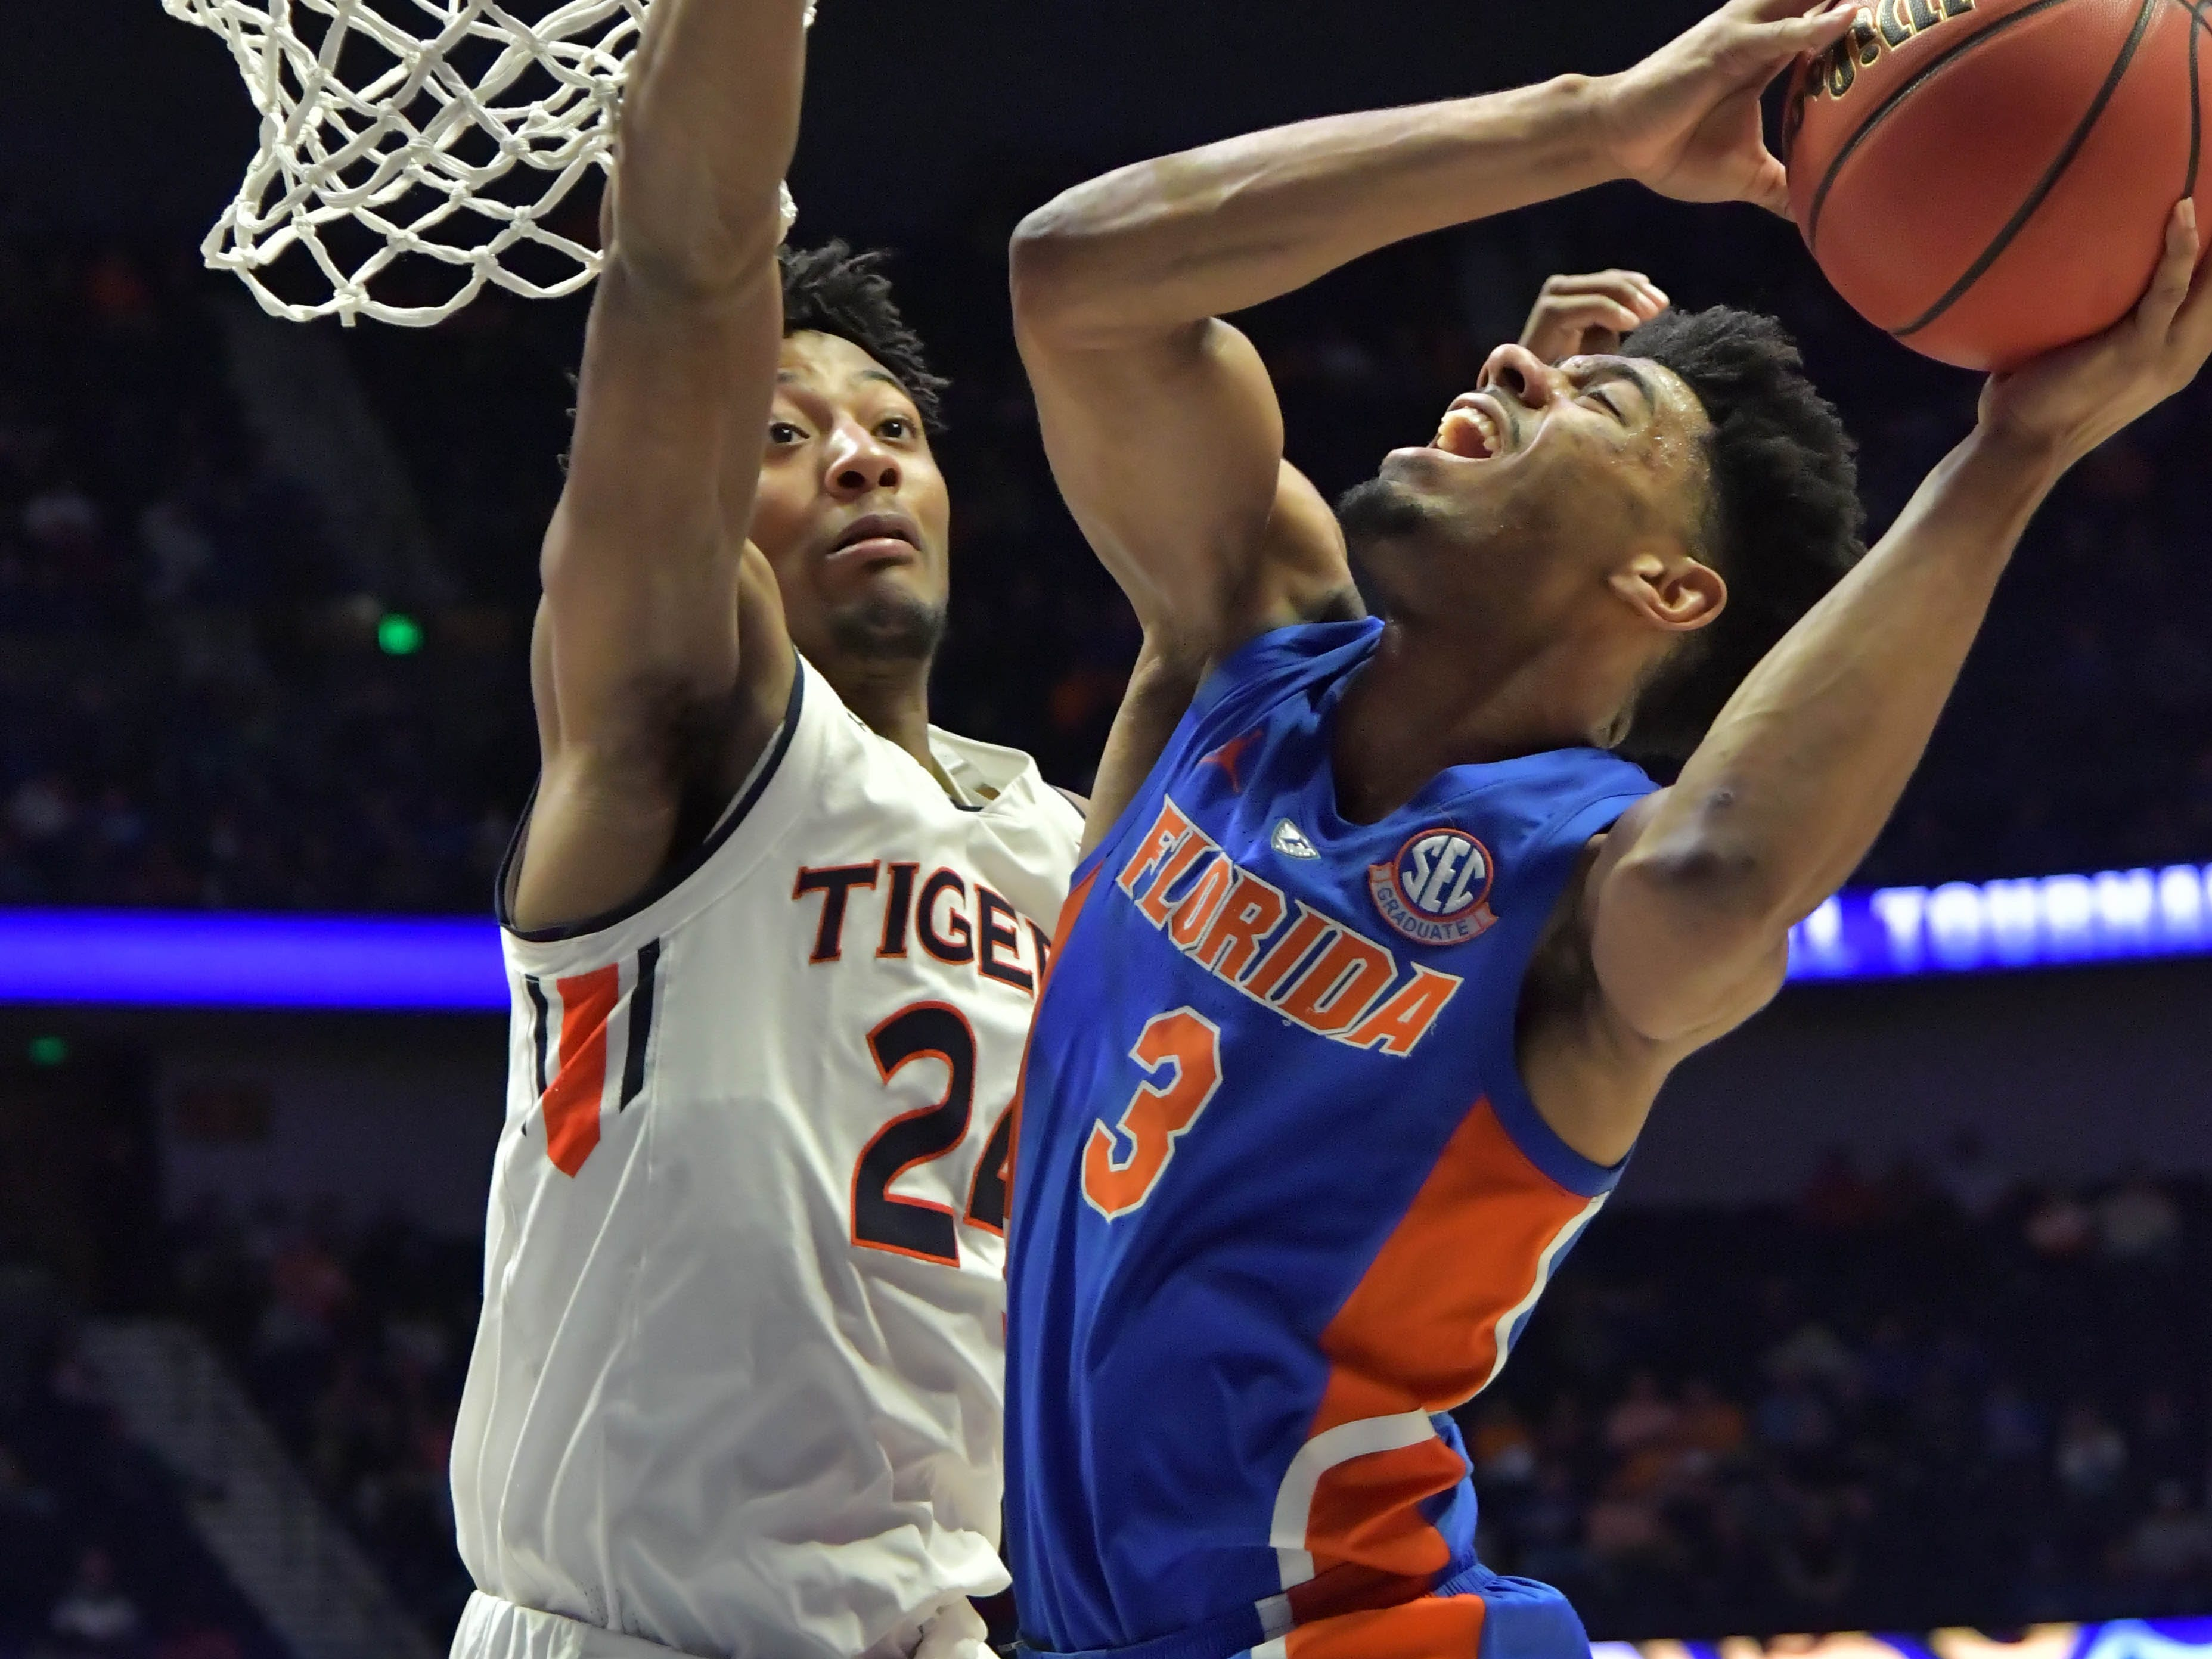 Mar 16, 2019; Nashville, TN, USA; Florida Gators guard Jalen Hudson (3) shoots against Auburn Tigers forward Anfernee McLemore (24) during the first half of game eleven in the SEC conference tournament at Bridgestone Arena. Mandatory Credit: Jim Brown-USA TODAY Sports